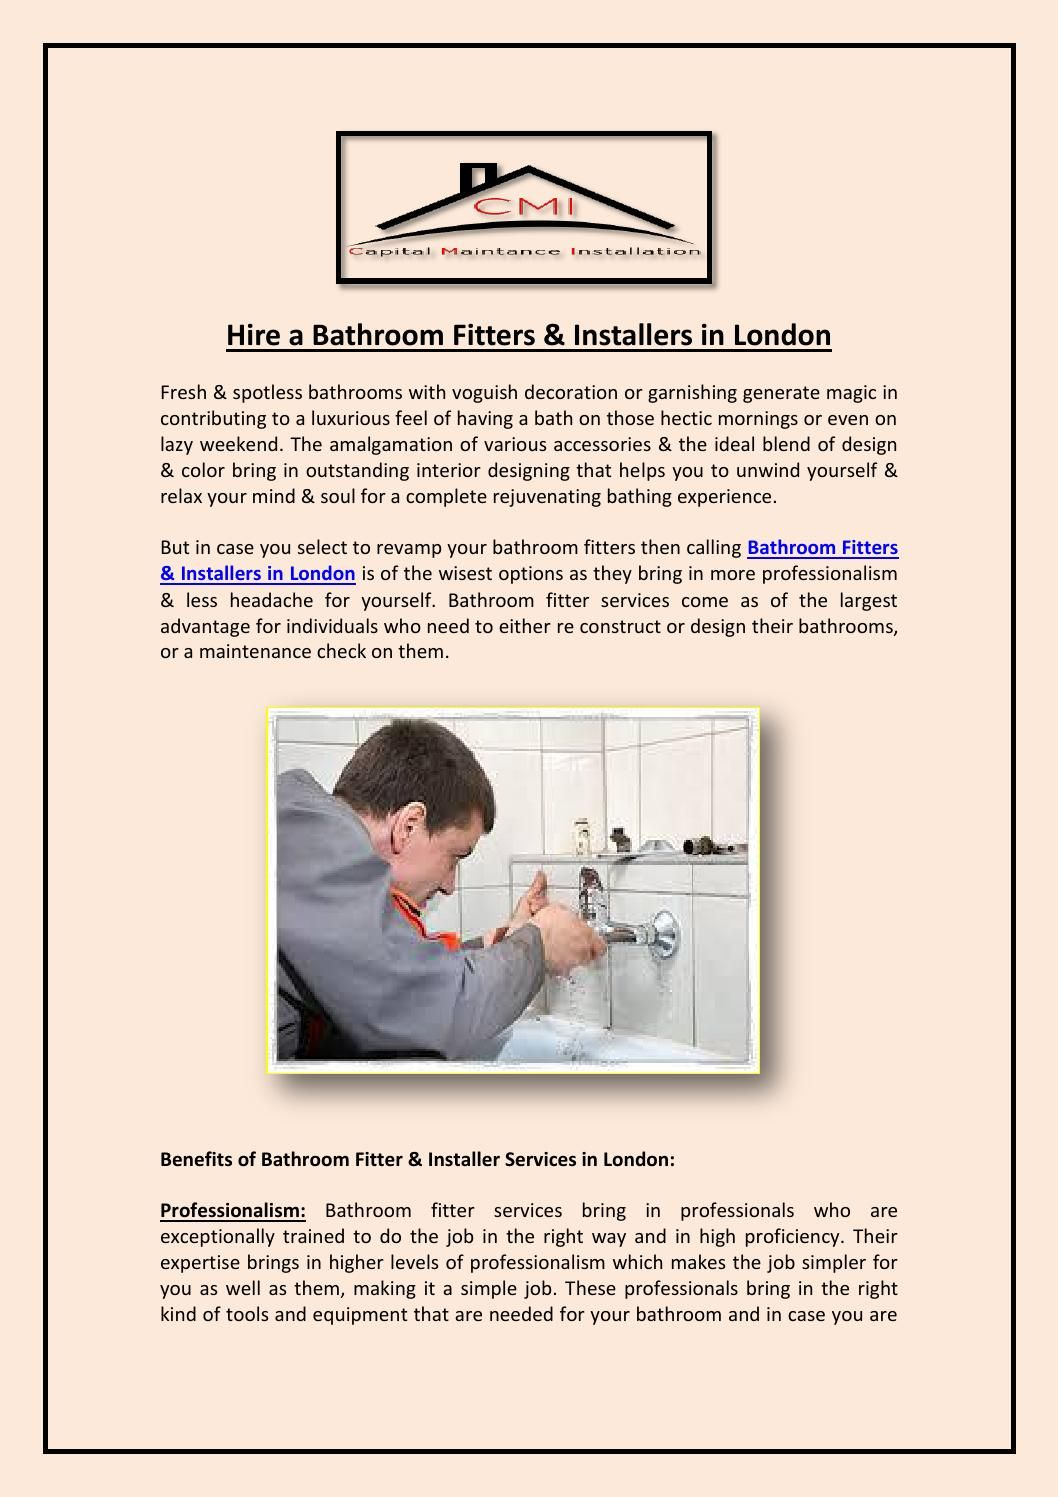 Hire a bathroom fitters & installers in london | Bathroom ...